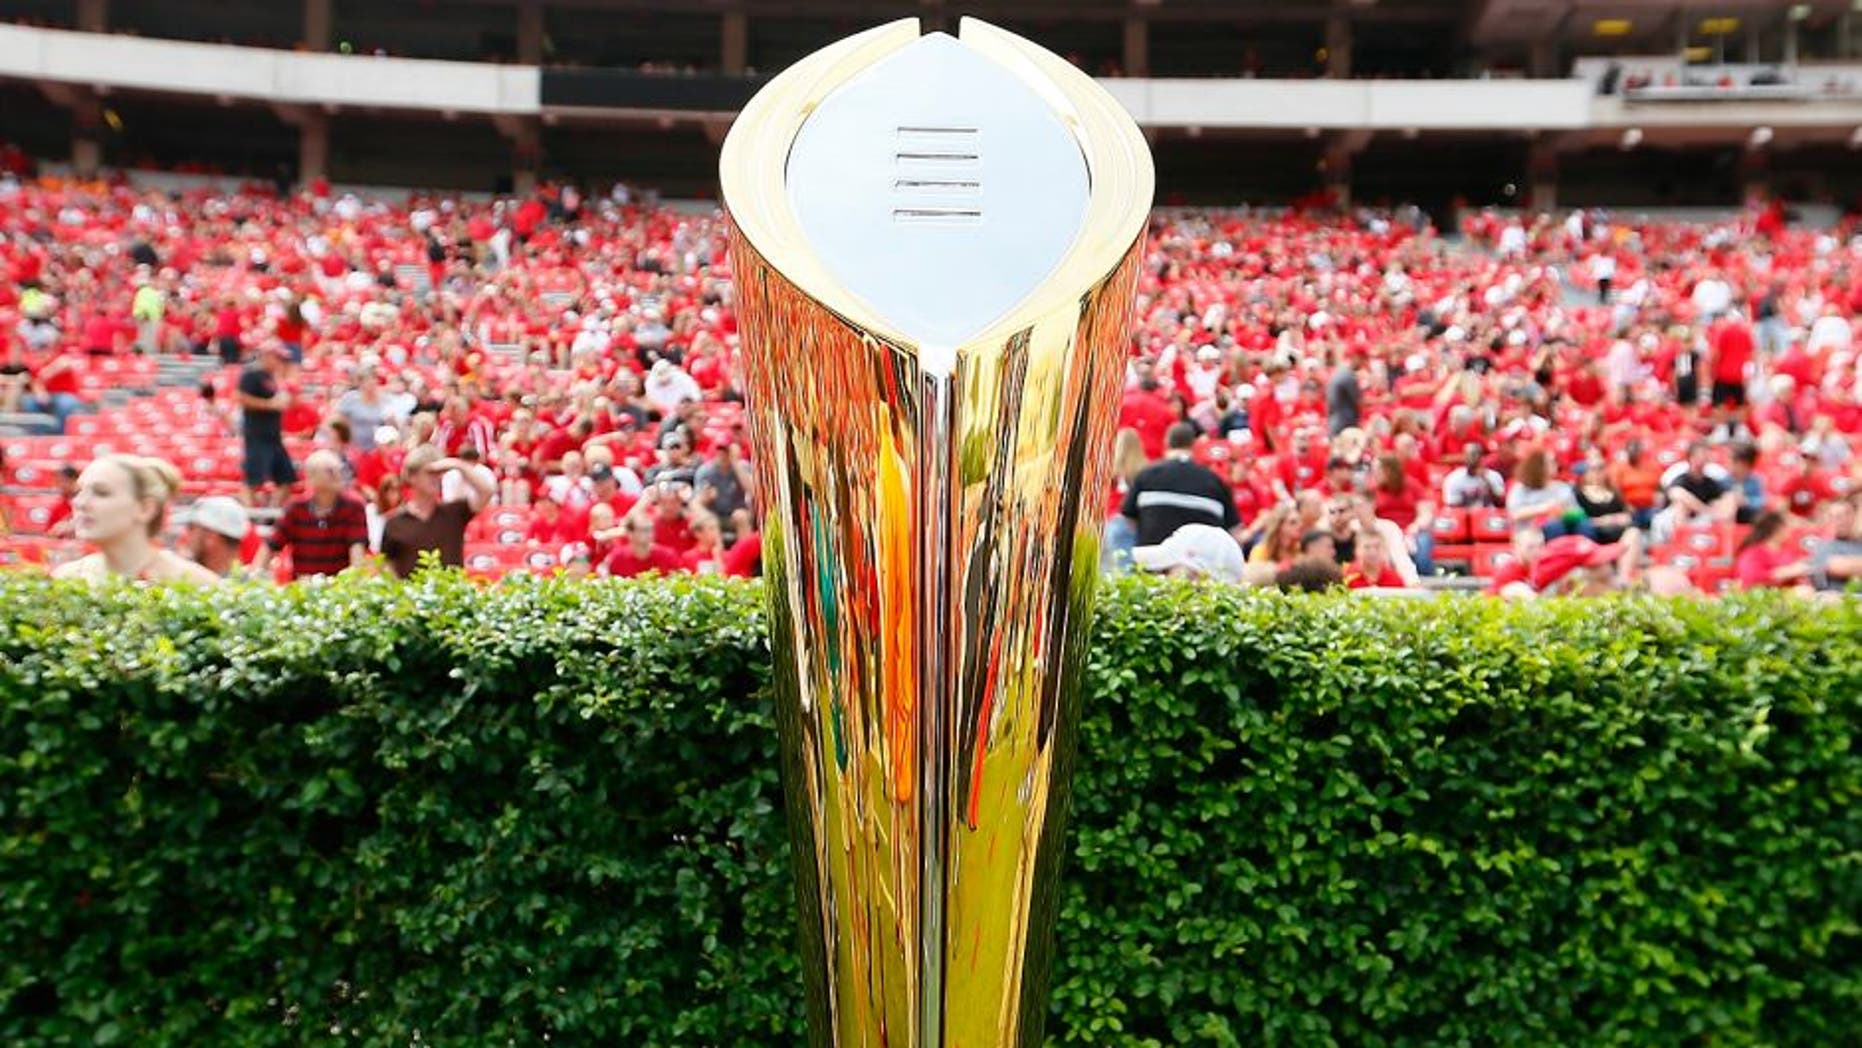 ATHENS, GA - SEPTEMBER 27: The College Football Playoff National Championship Trophy is seen on the field prior to the game between the Georgia Bulldogs and the Tennessee Volunteers at Sanford Stadium on September 27, 2014 in Athens, Georgia. (Photo by Kevin C. Cox/Getty Images)